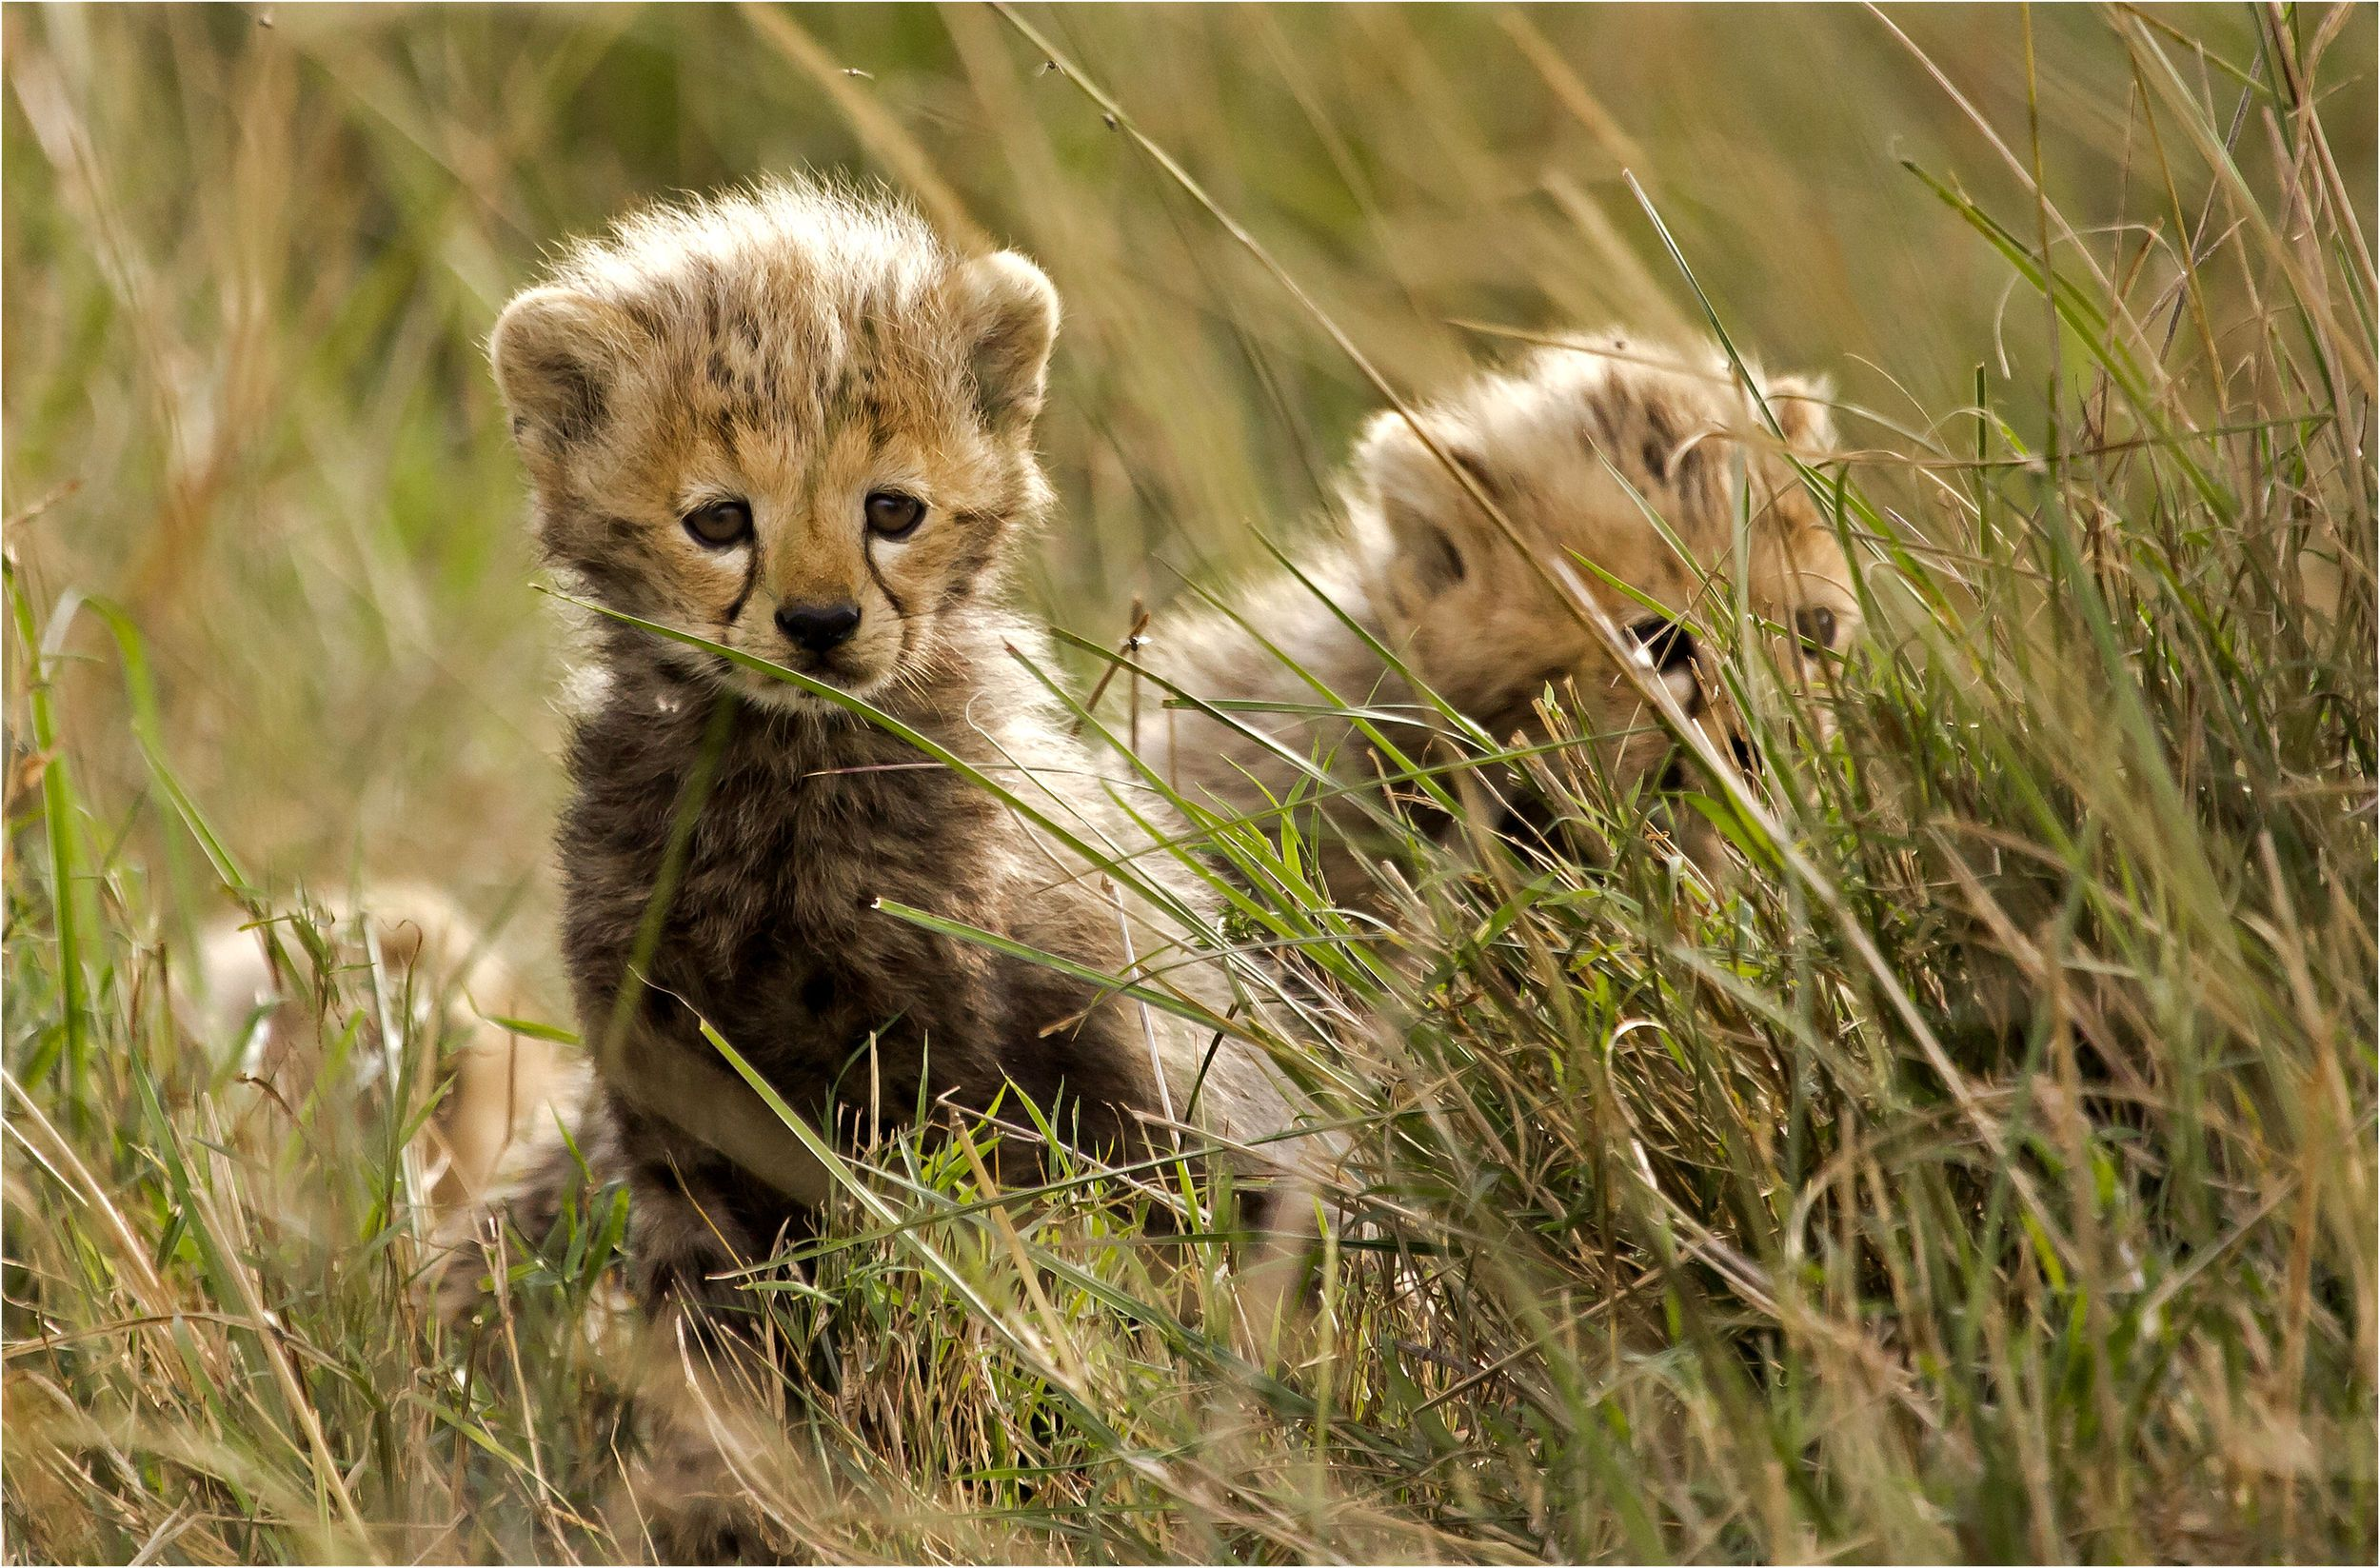 Cheetah with cub wallpapers HD Tiger hd wallpapers